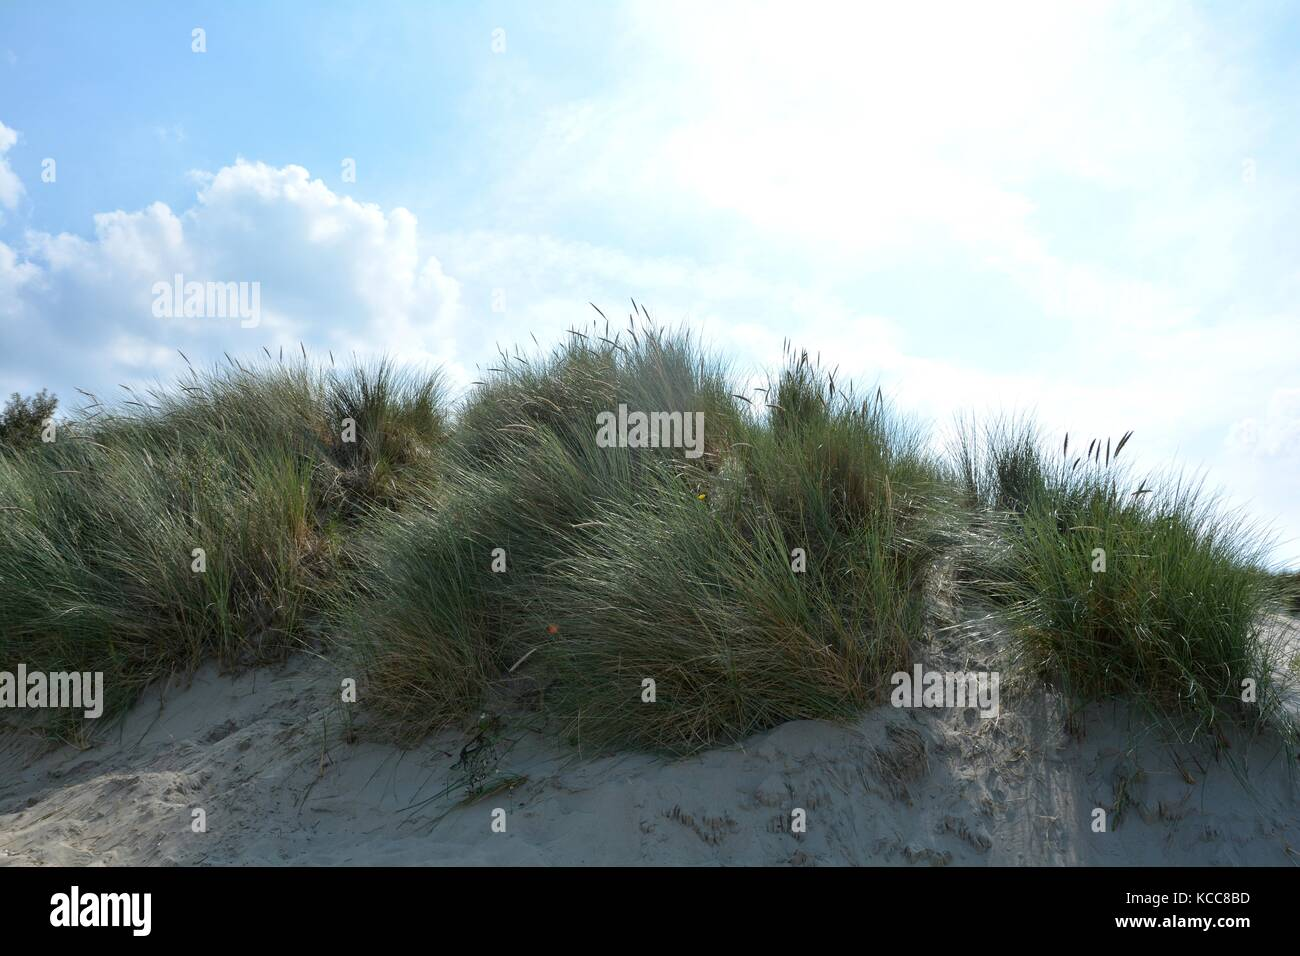 Beach oat in the sandy dunes on the North Sea coast in the backlight - Stock Image